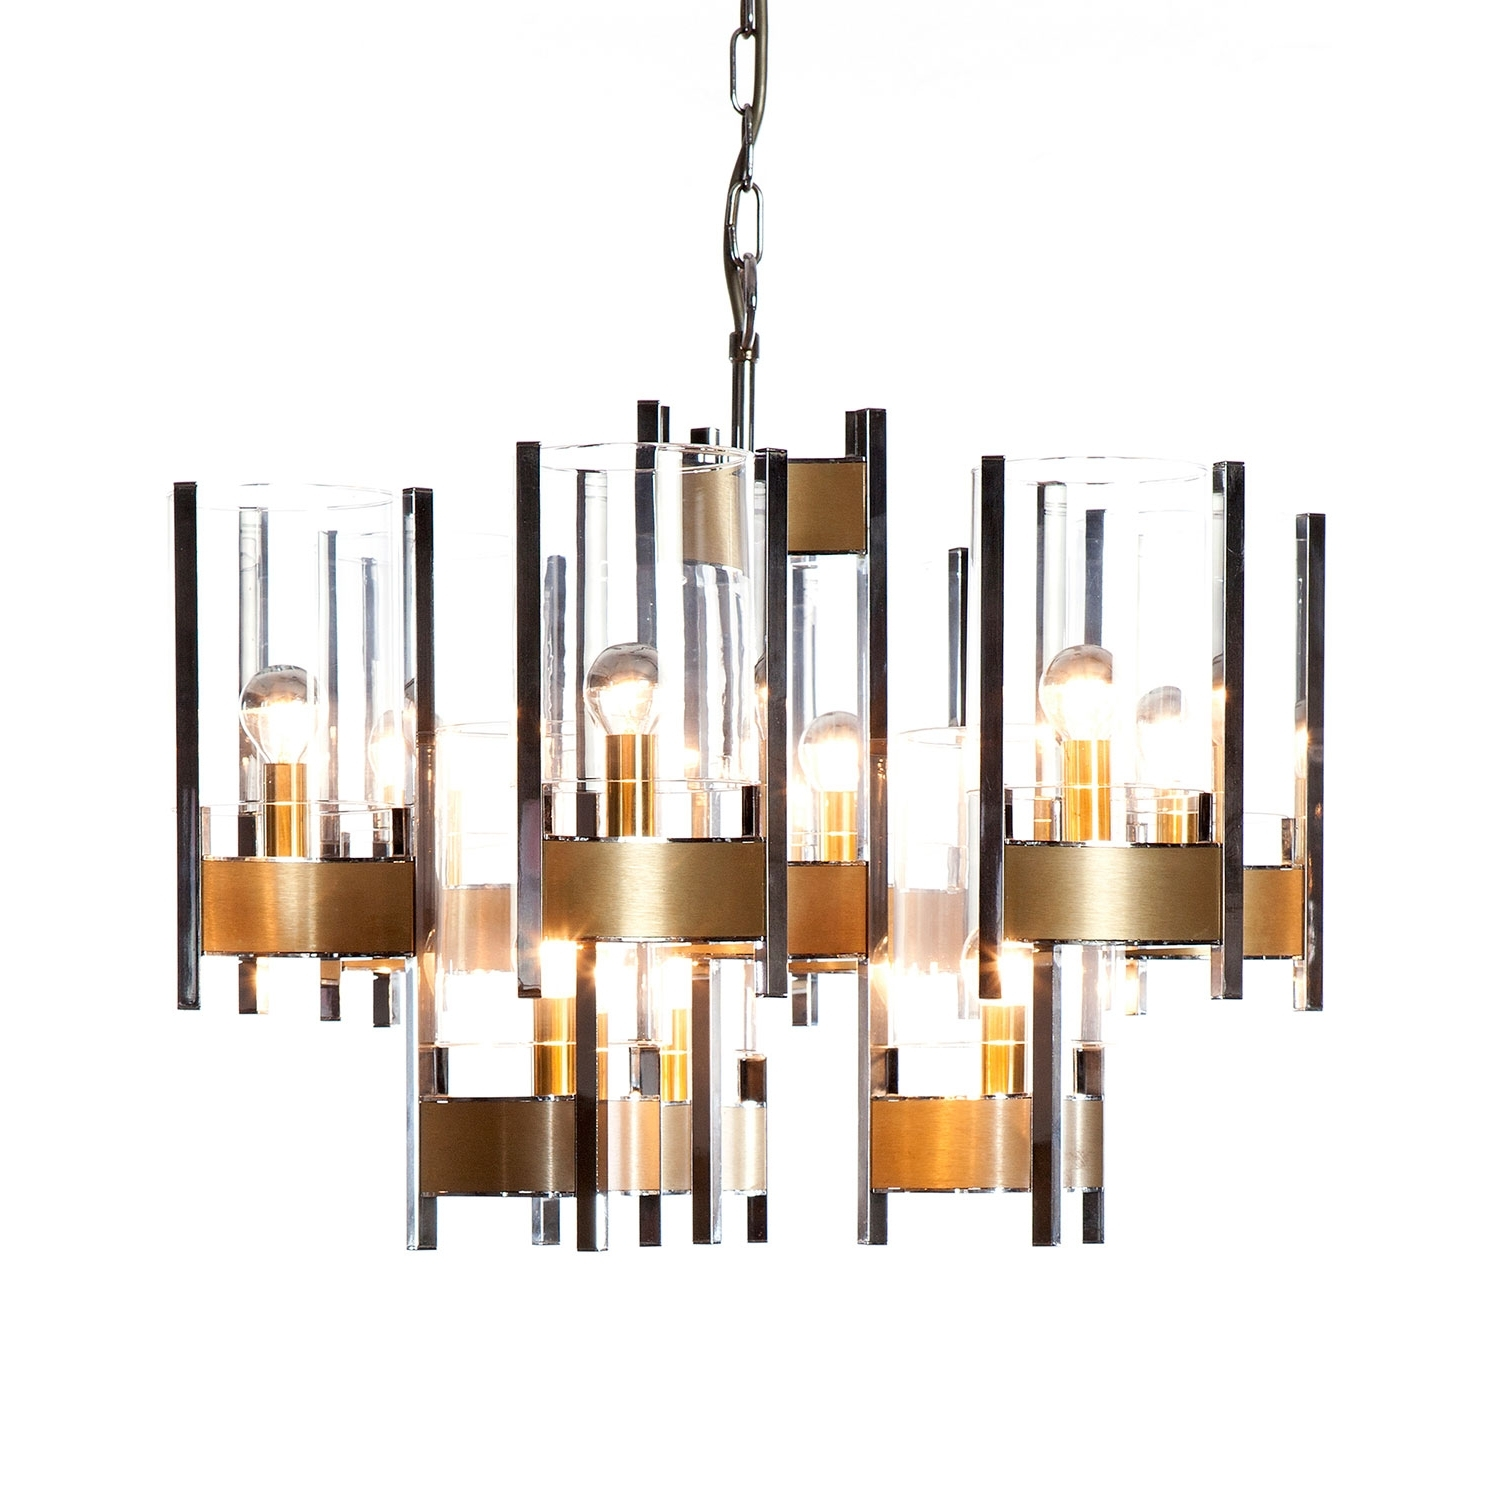 Preferred Chrome And Glass Chandelier Regarding 1960's 9 Light Chrome And Glass Chandeliergaetano Sciolari (View 16 of 20)